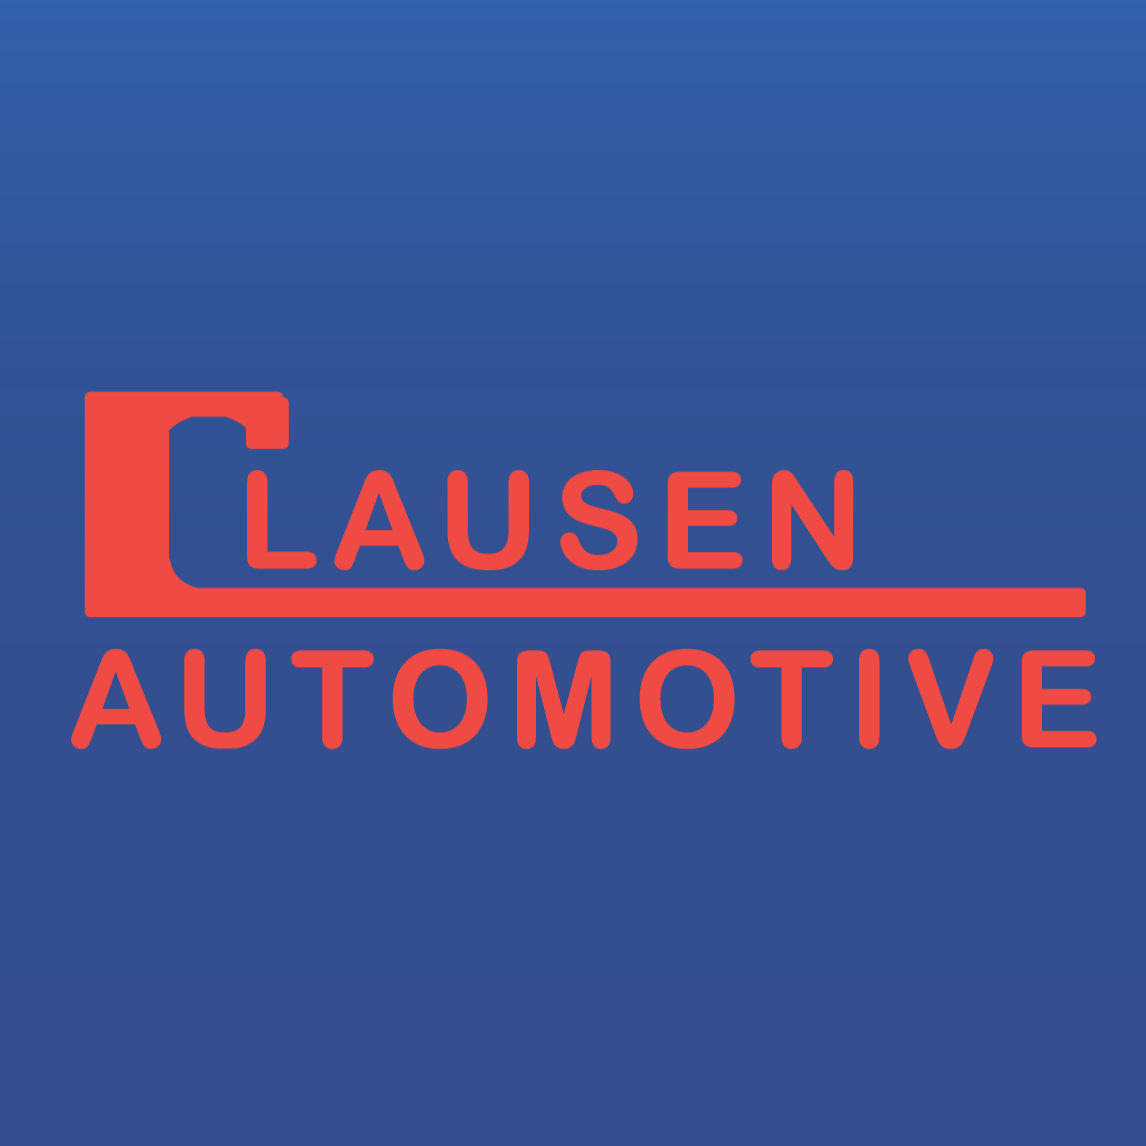 Clausen Automotive Logo